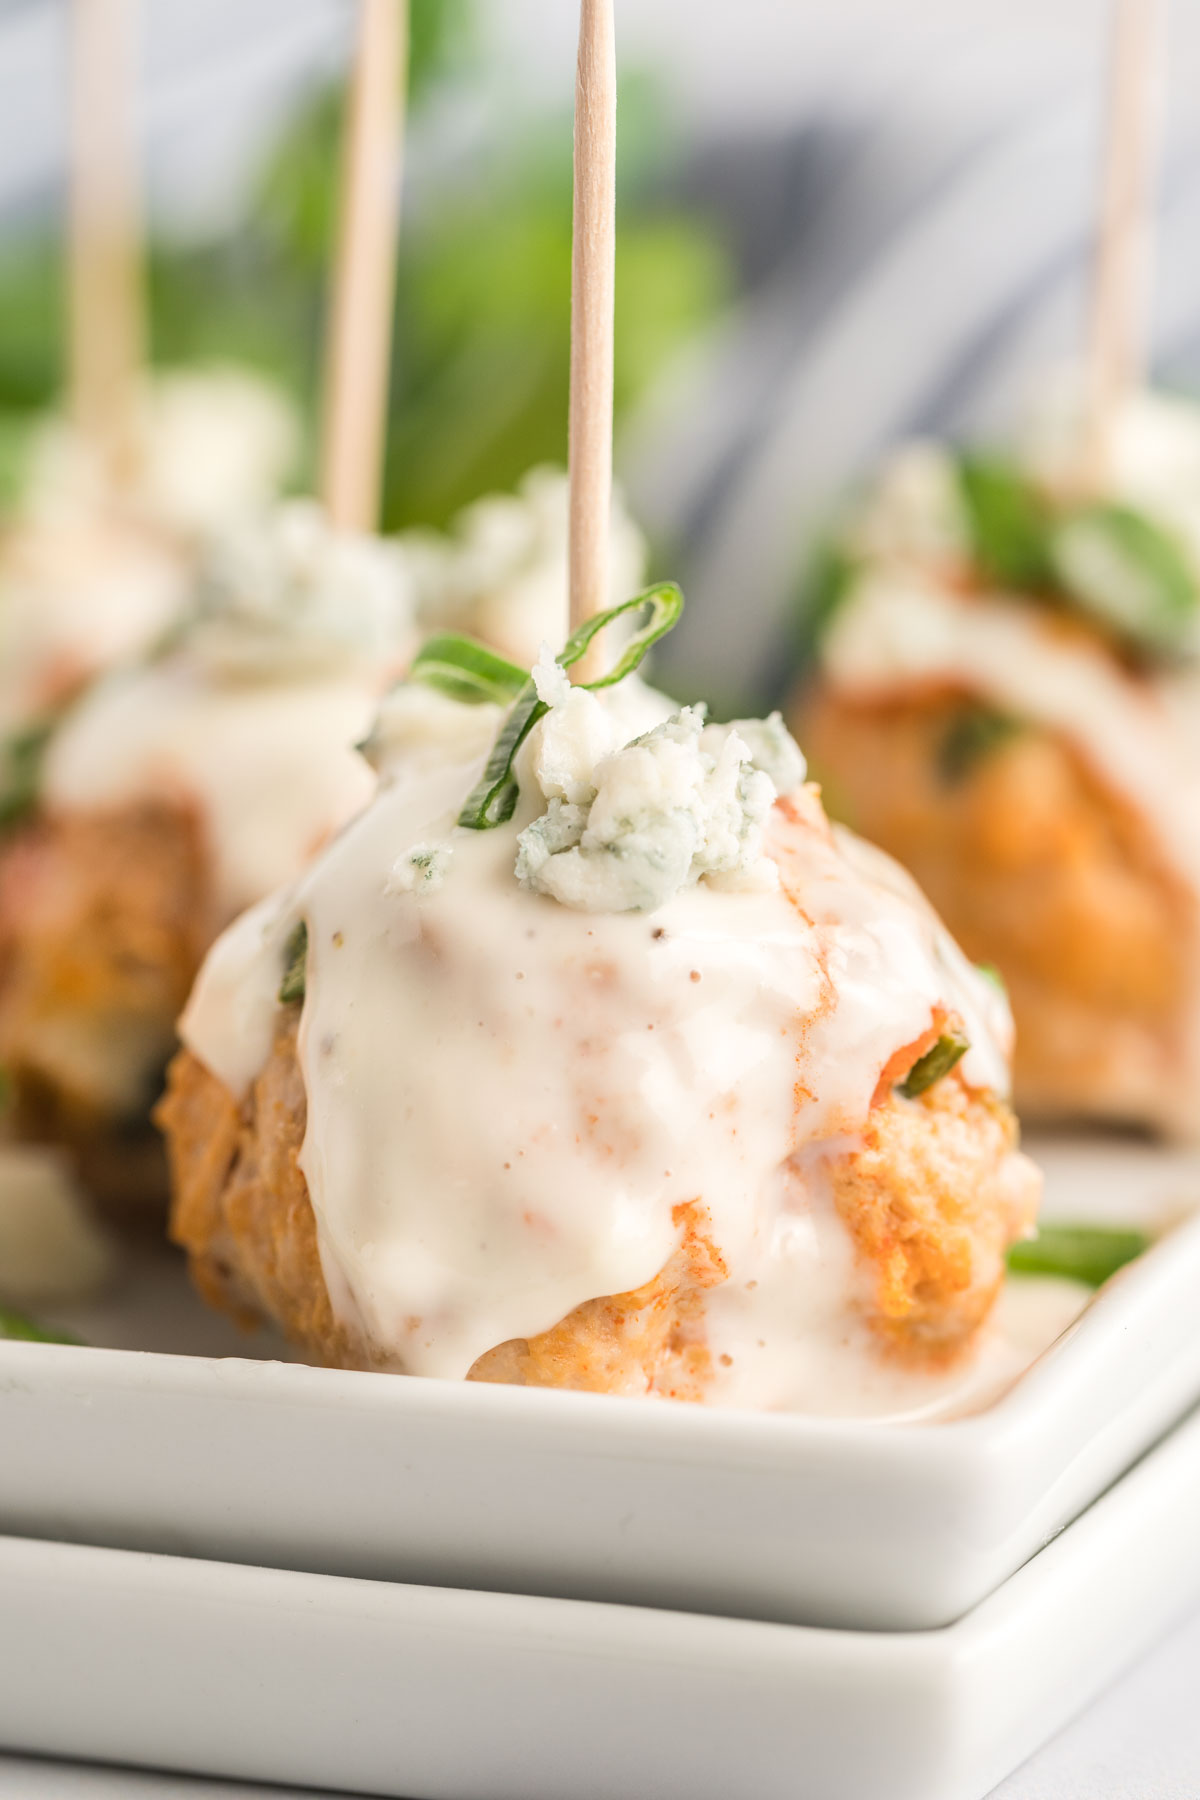 Meatball on a toothpick drizzled with blue cheese dressing, sliced green onion and crumbled blue cheese.